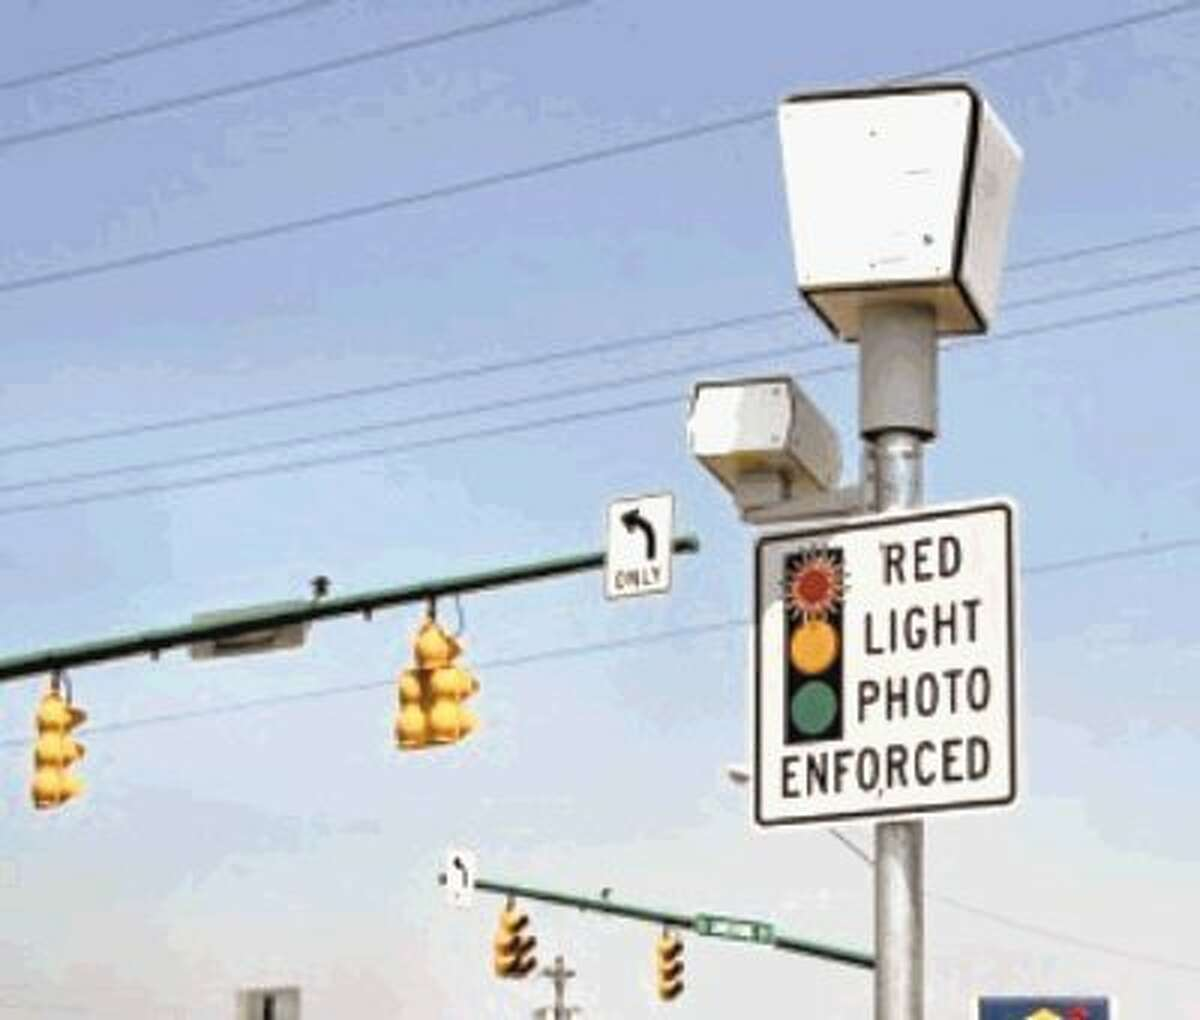 RED LIGHT VIOLATIONS In California, a red-light violation costs $490 which is the highest in the nation. In 2016, the fine in most parts of the country was around $100.